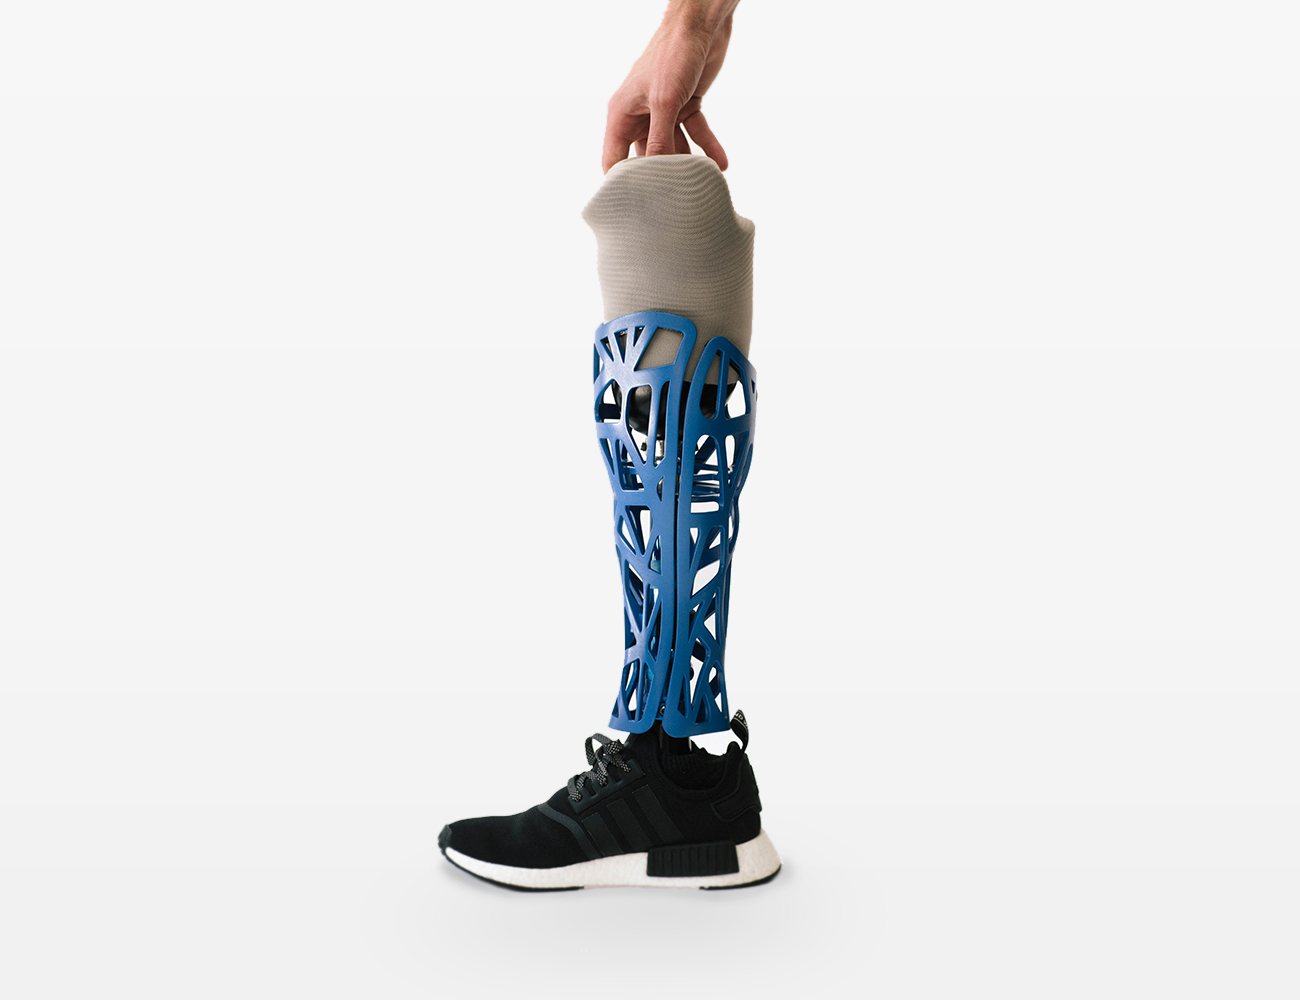 Custom Form Prosthetic. Image source: https://honepd.com/